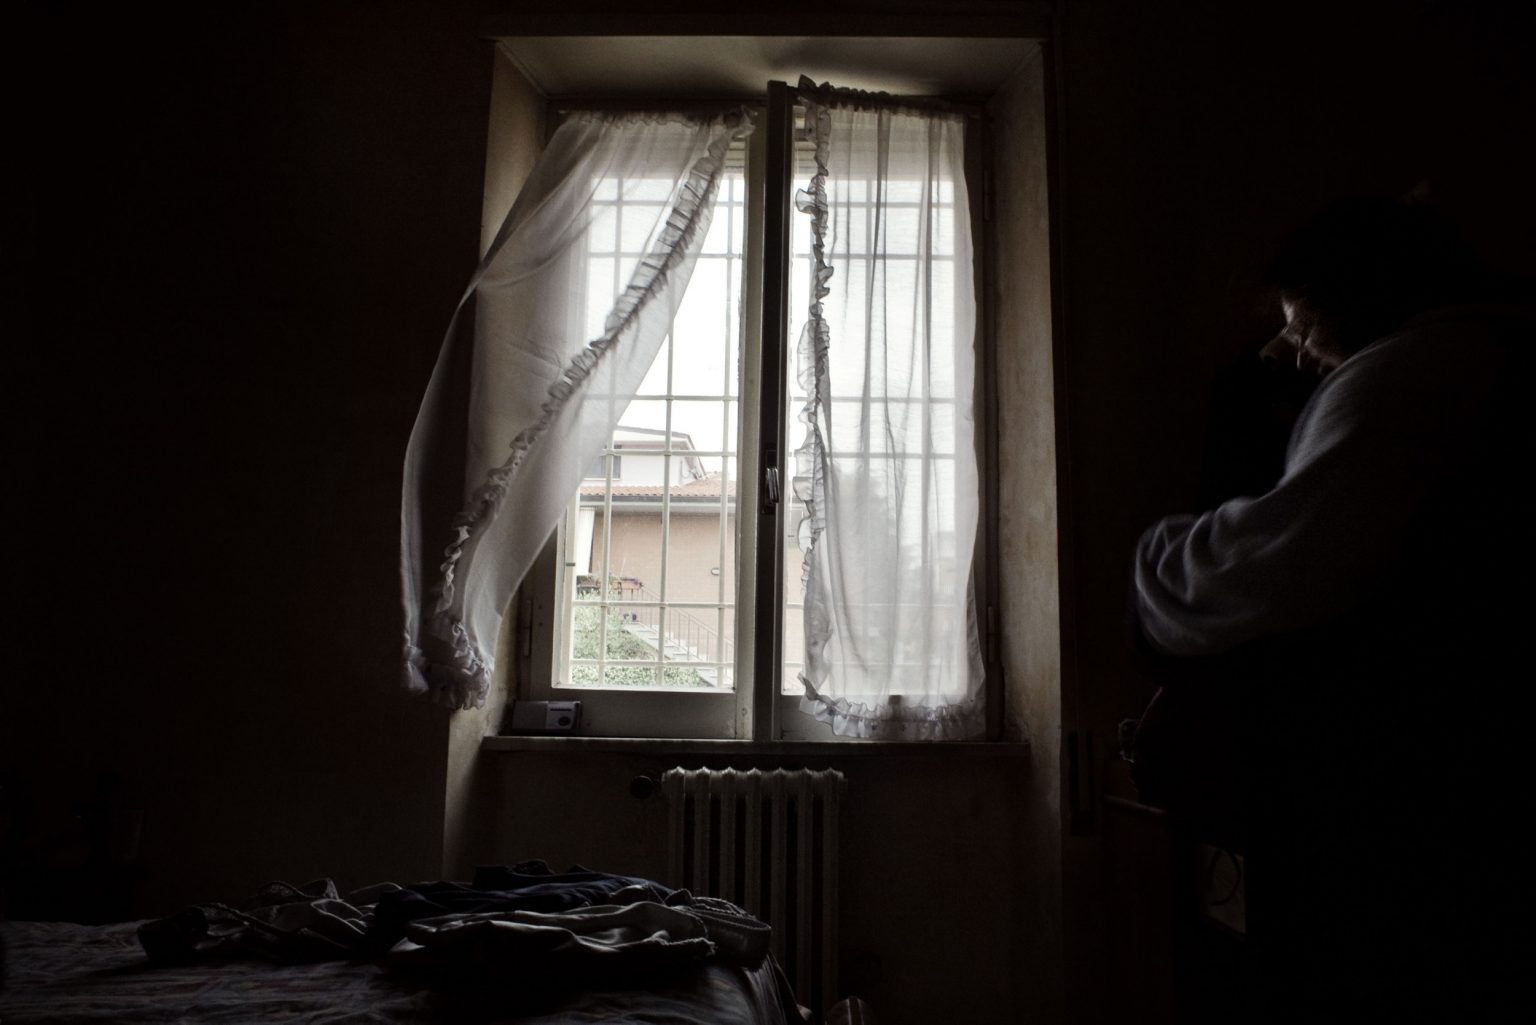 San Cesareo (Rome), January 2008 - The window of the Angela's room, a girl suffering from a serious obesity